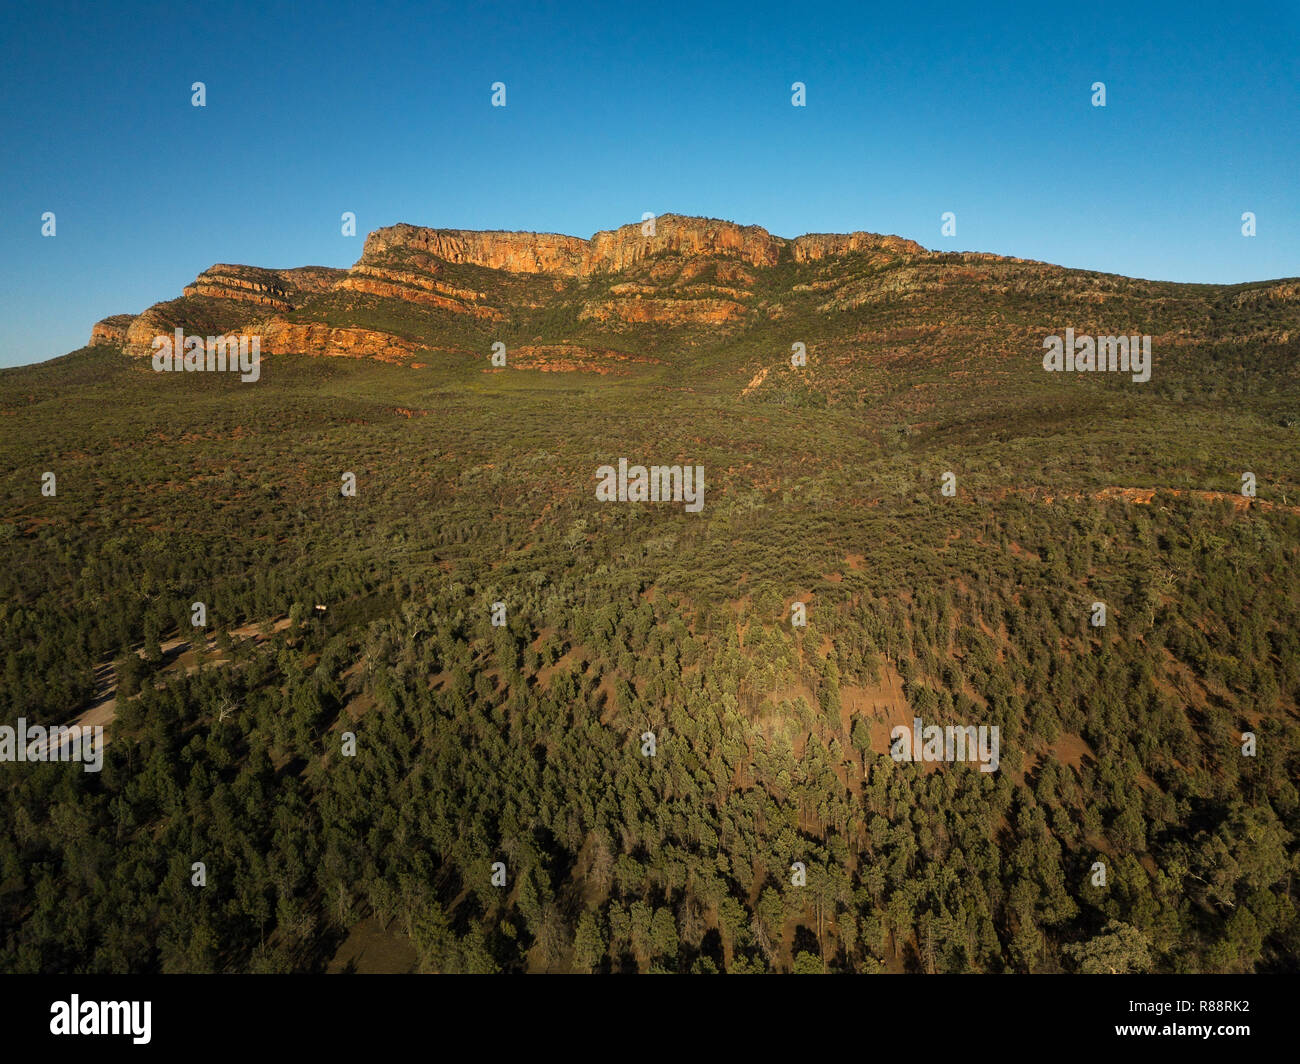 Aerial of Rawnsley Bluff, part of Wilpena Pound in Flinders Ranges. - Stock Image